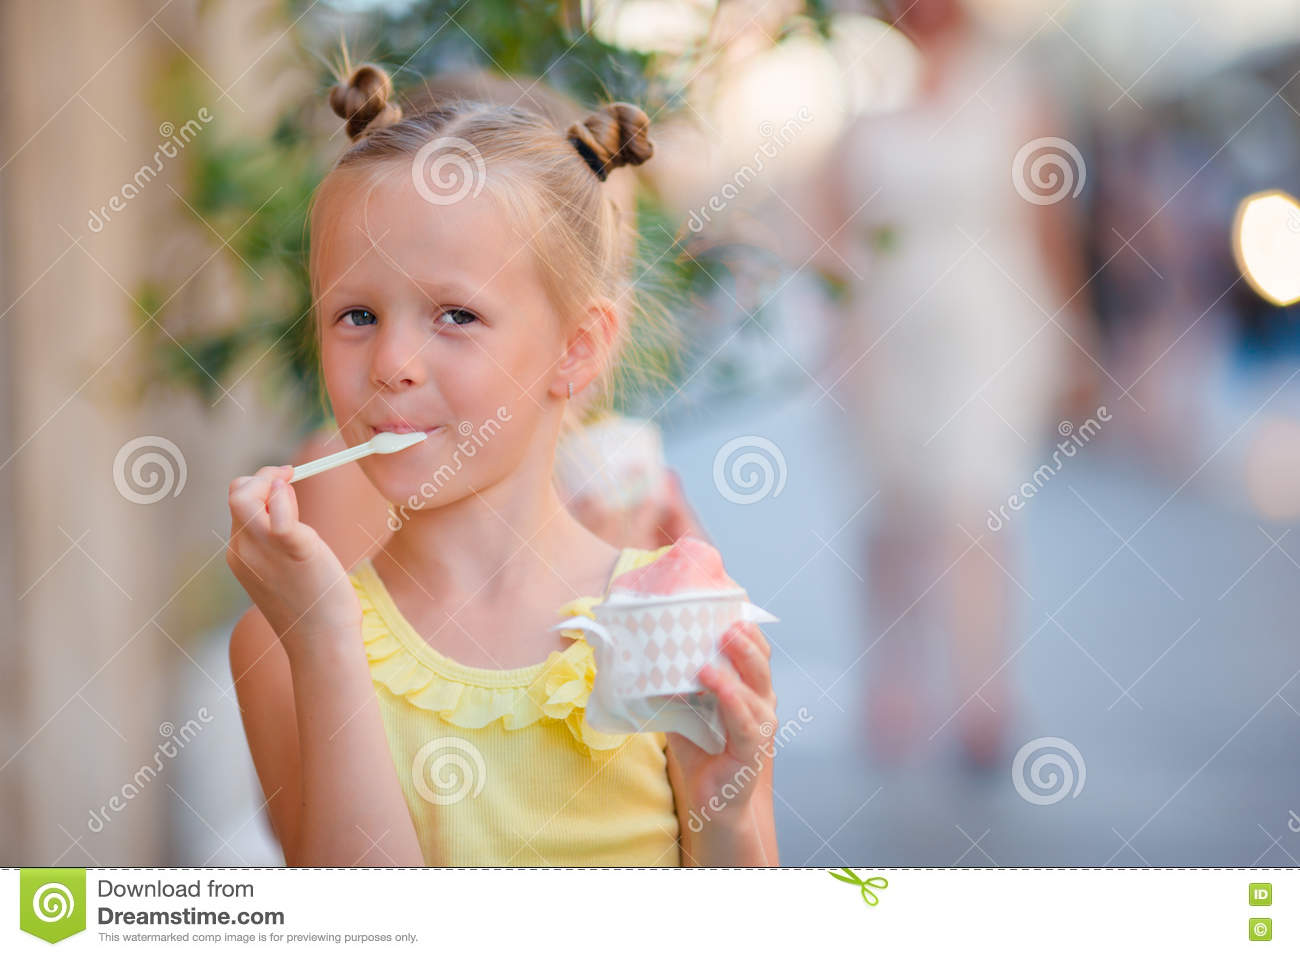 little girl eating ice-cream outdoors at summer. cute kid enjoying